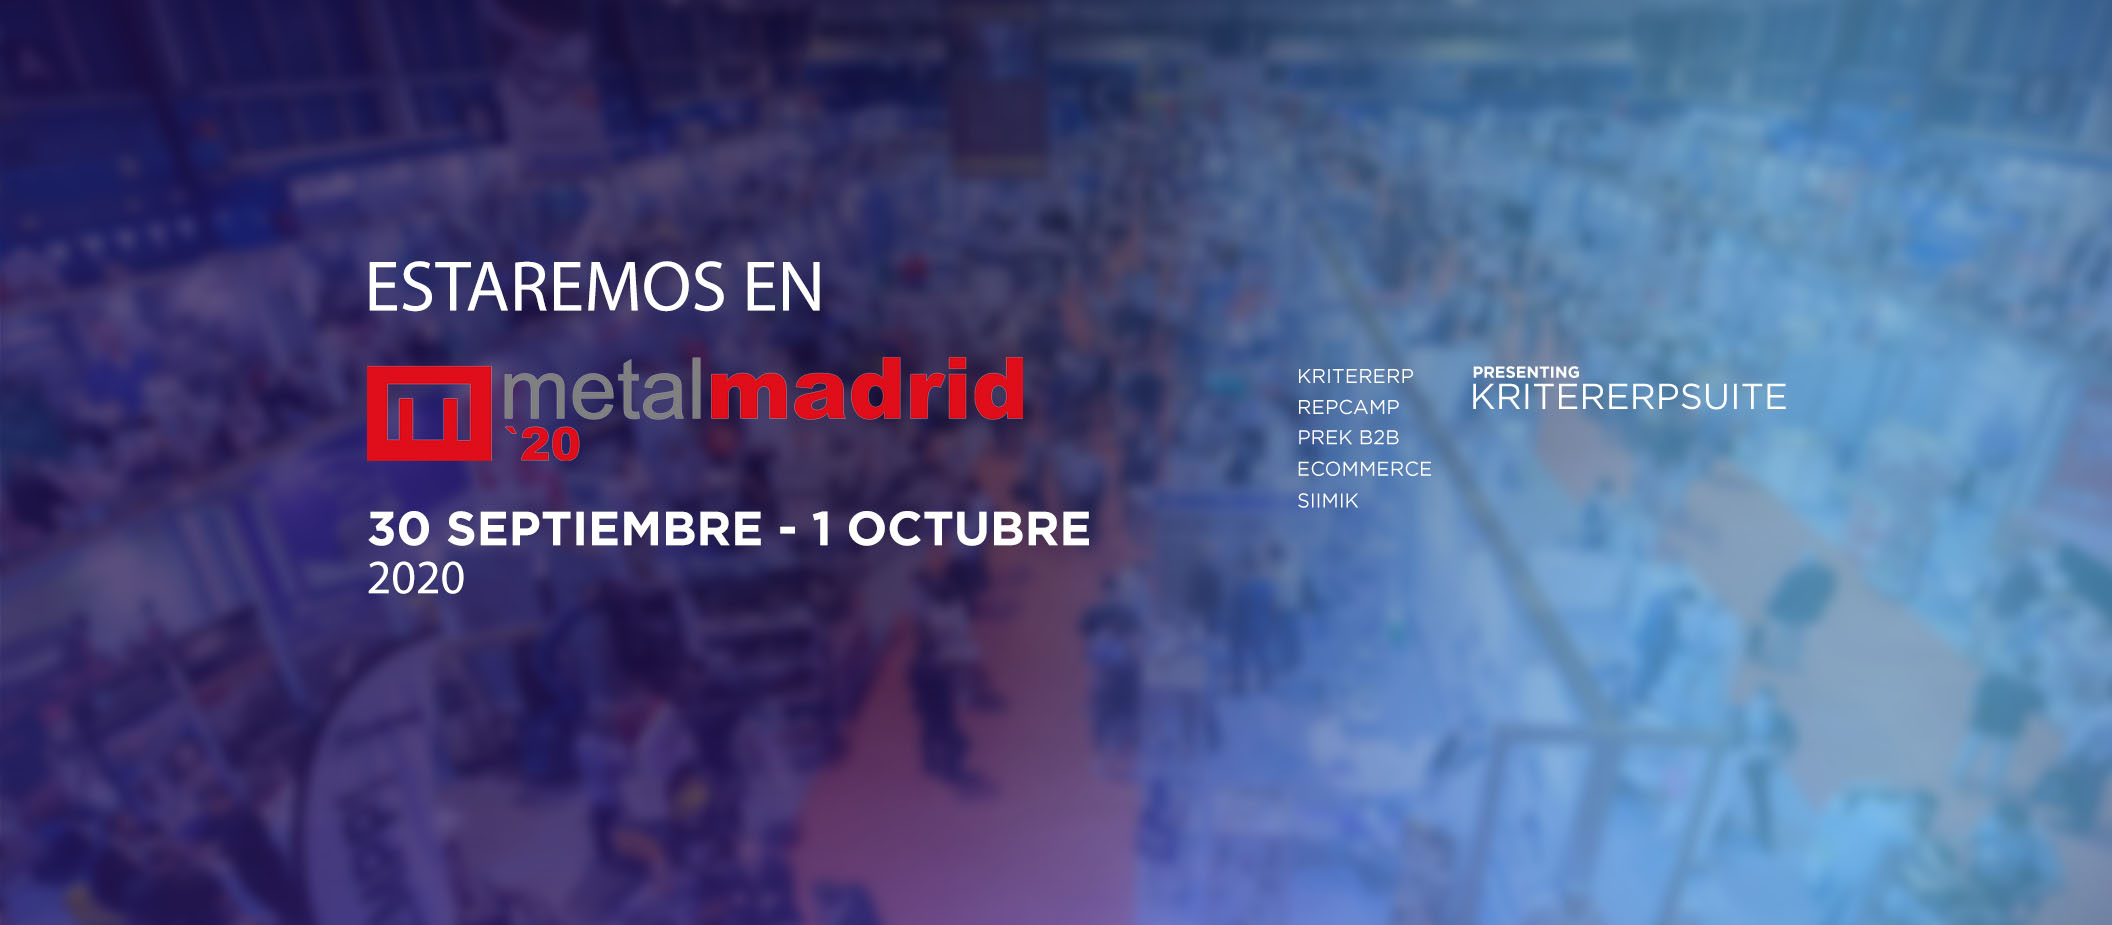 KRITER SOFTWARE EN METALMADRID 2020